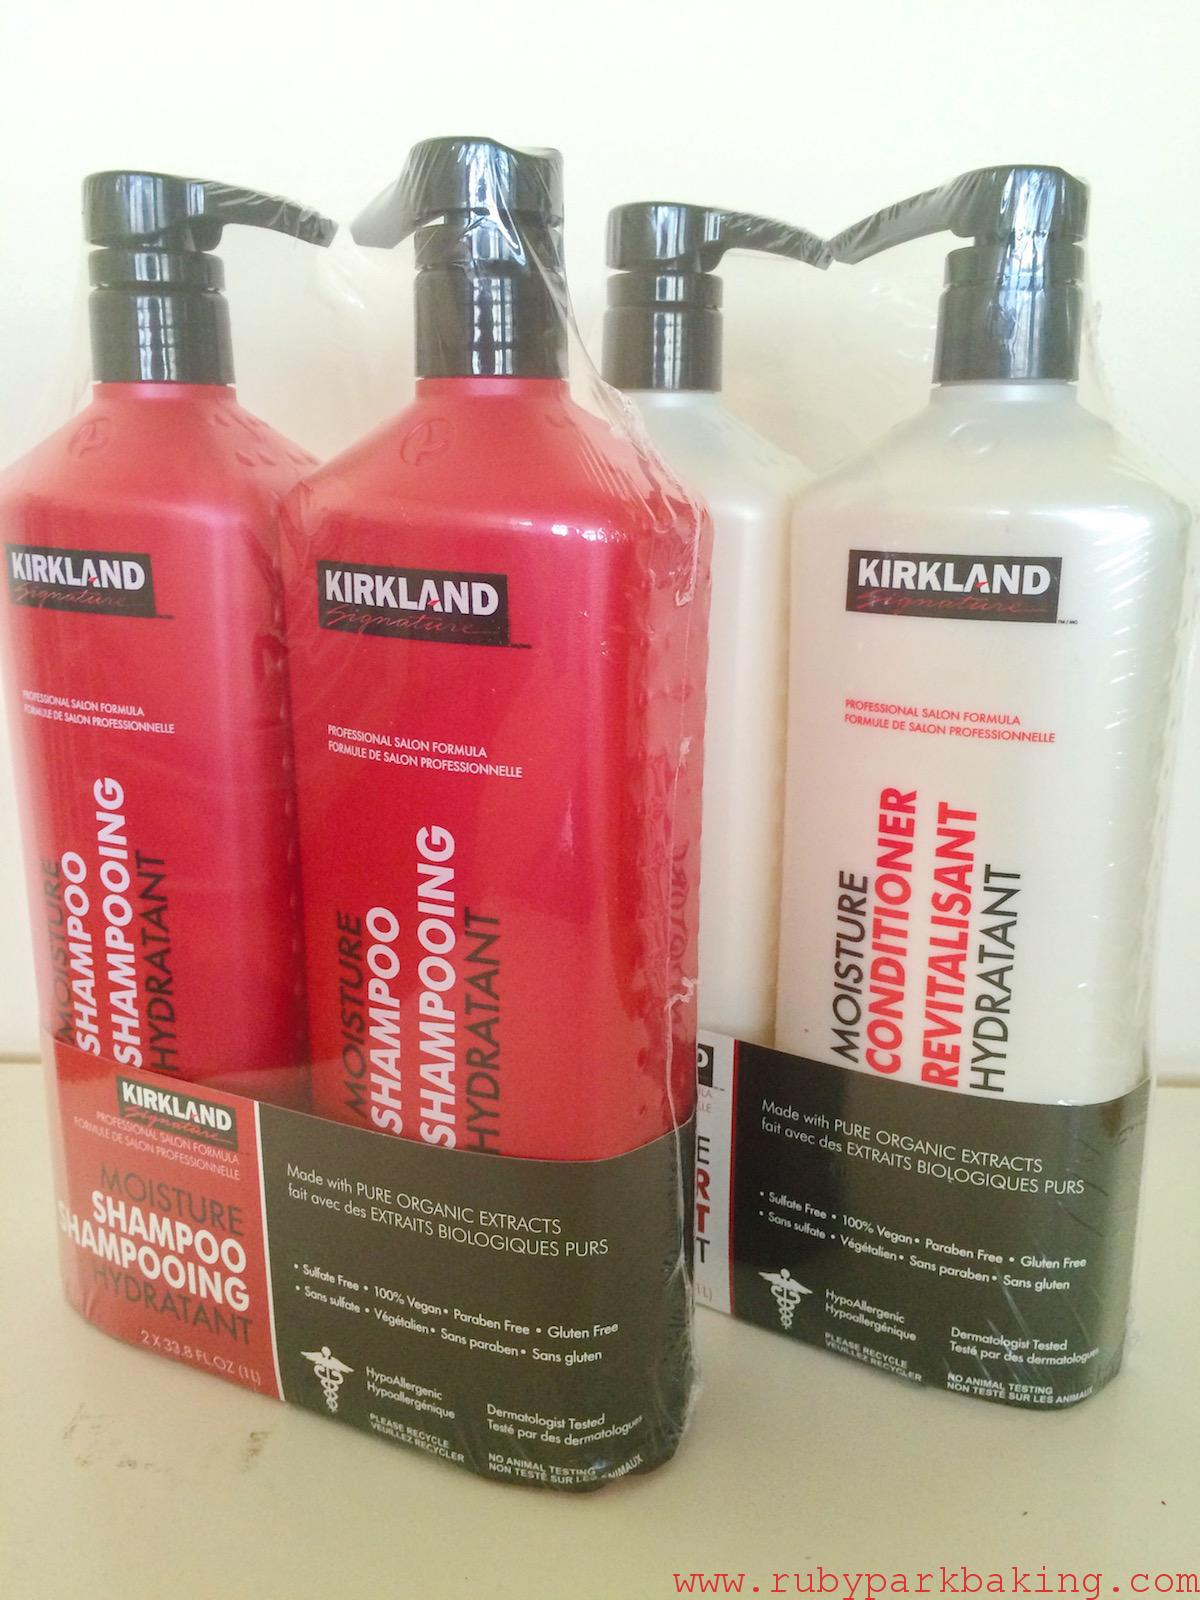 Costco, Kirkland signature shampoo and conditioner